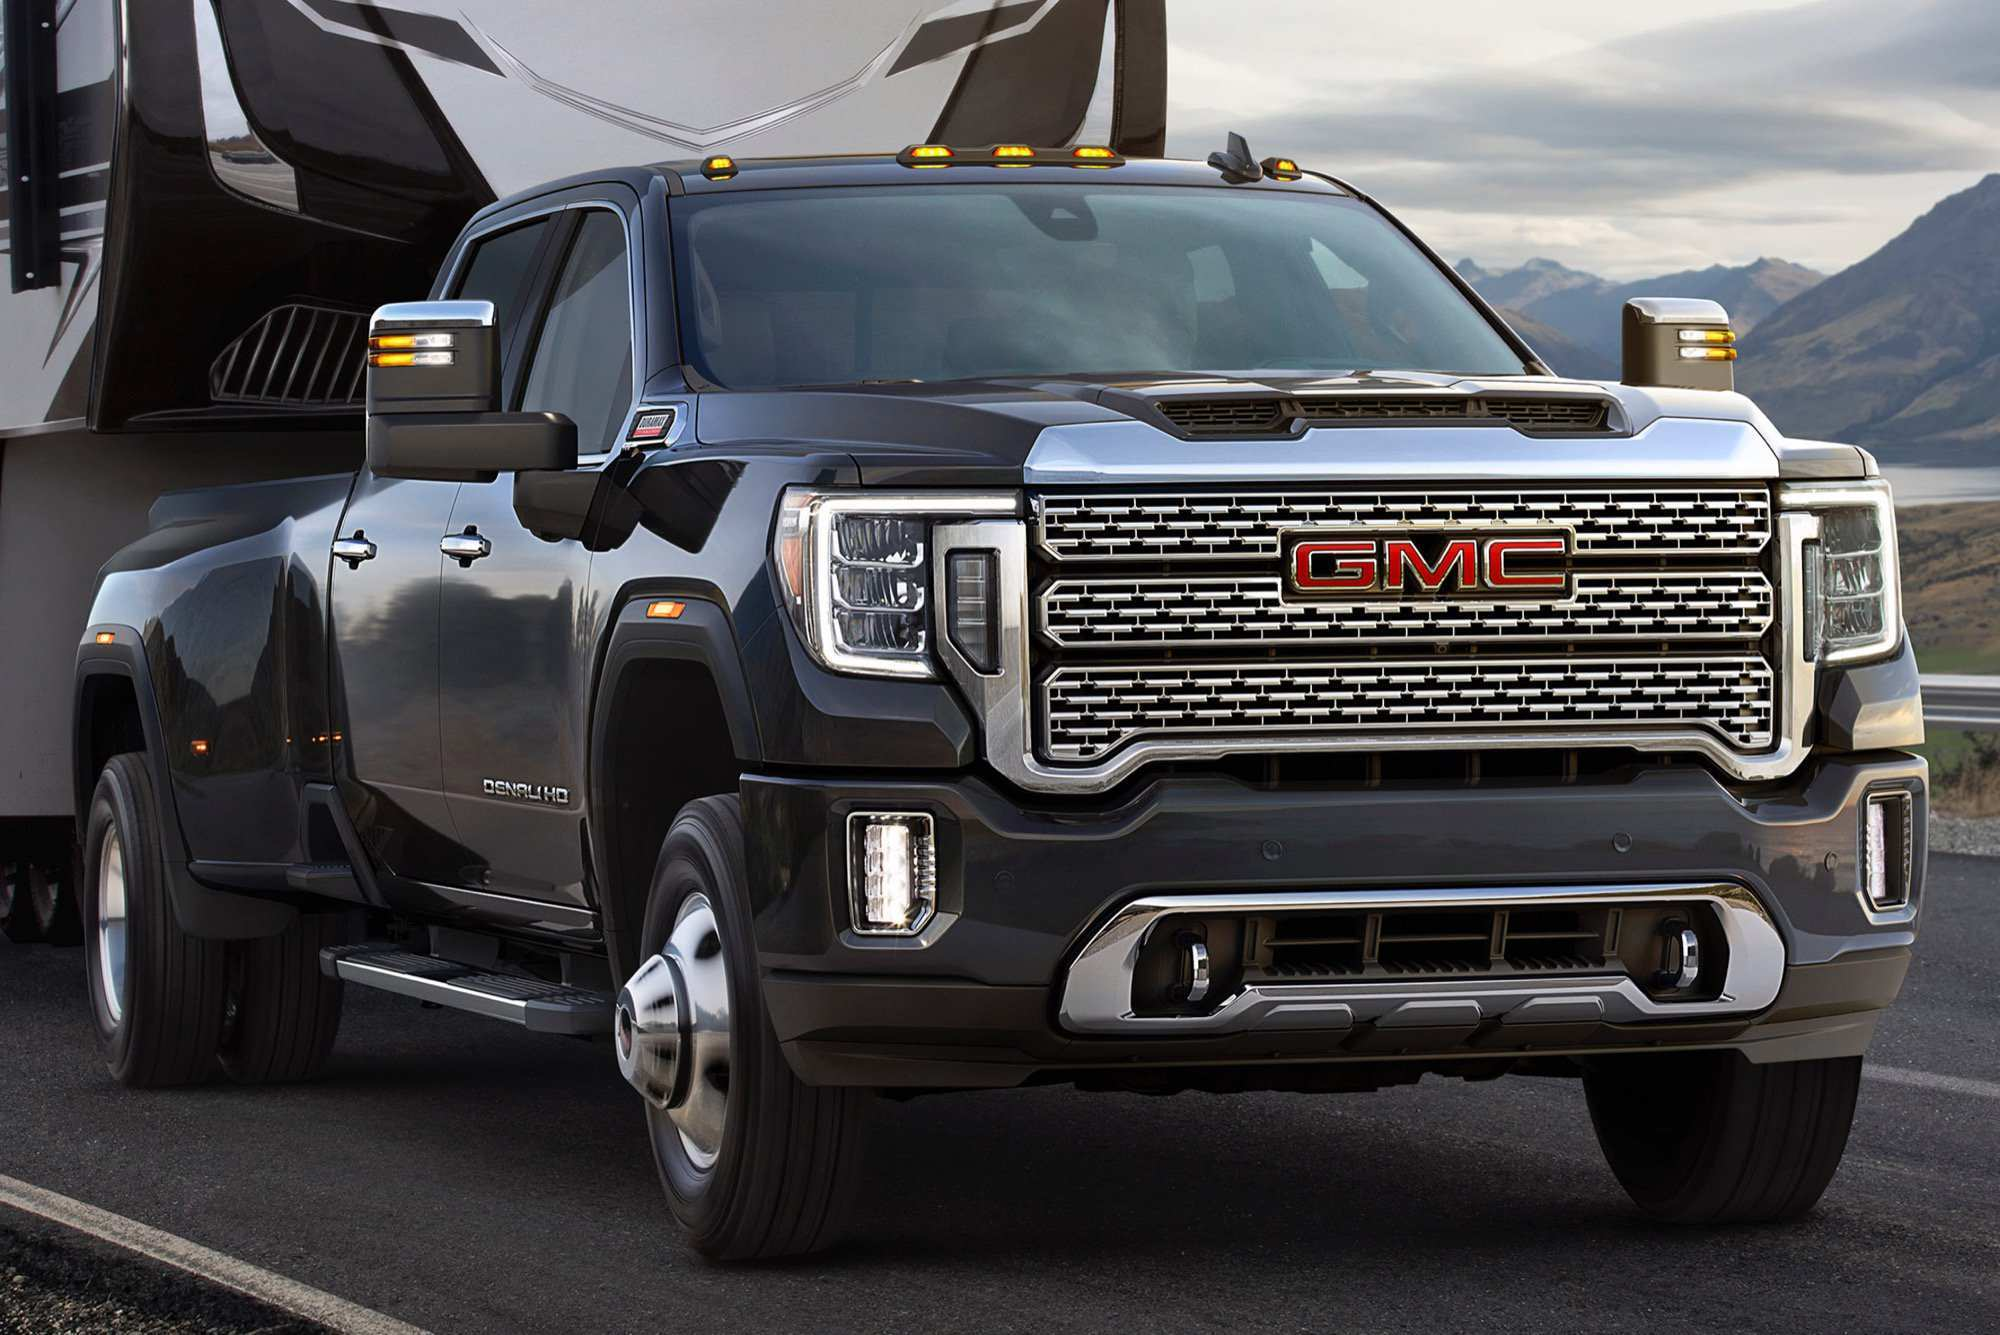 49 Gallery of 2020 Gmc 1500 Overview with 2020 Gmc 1500